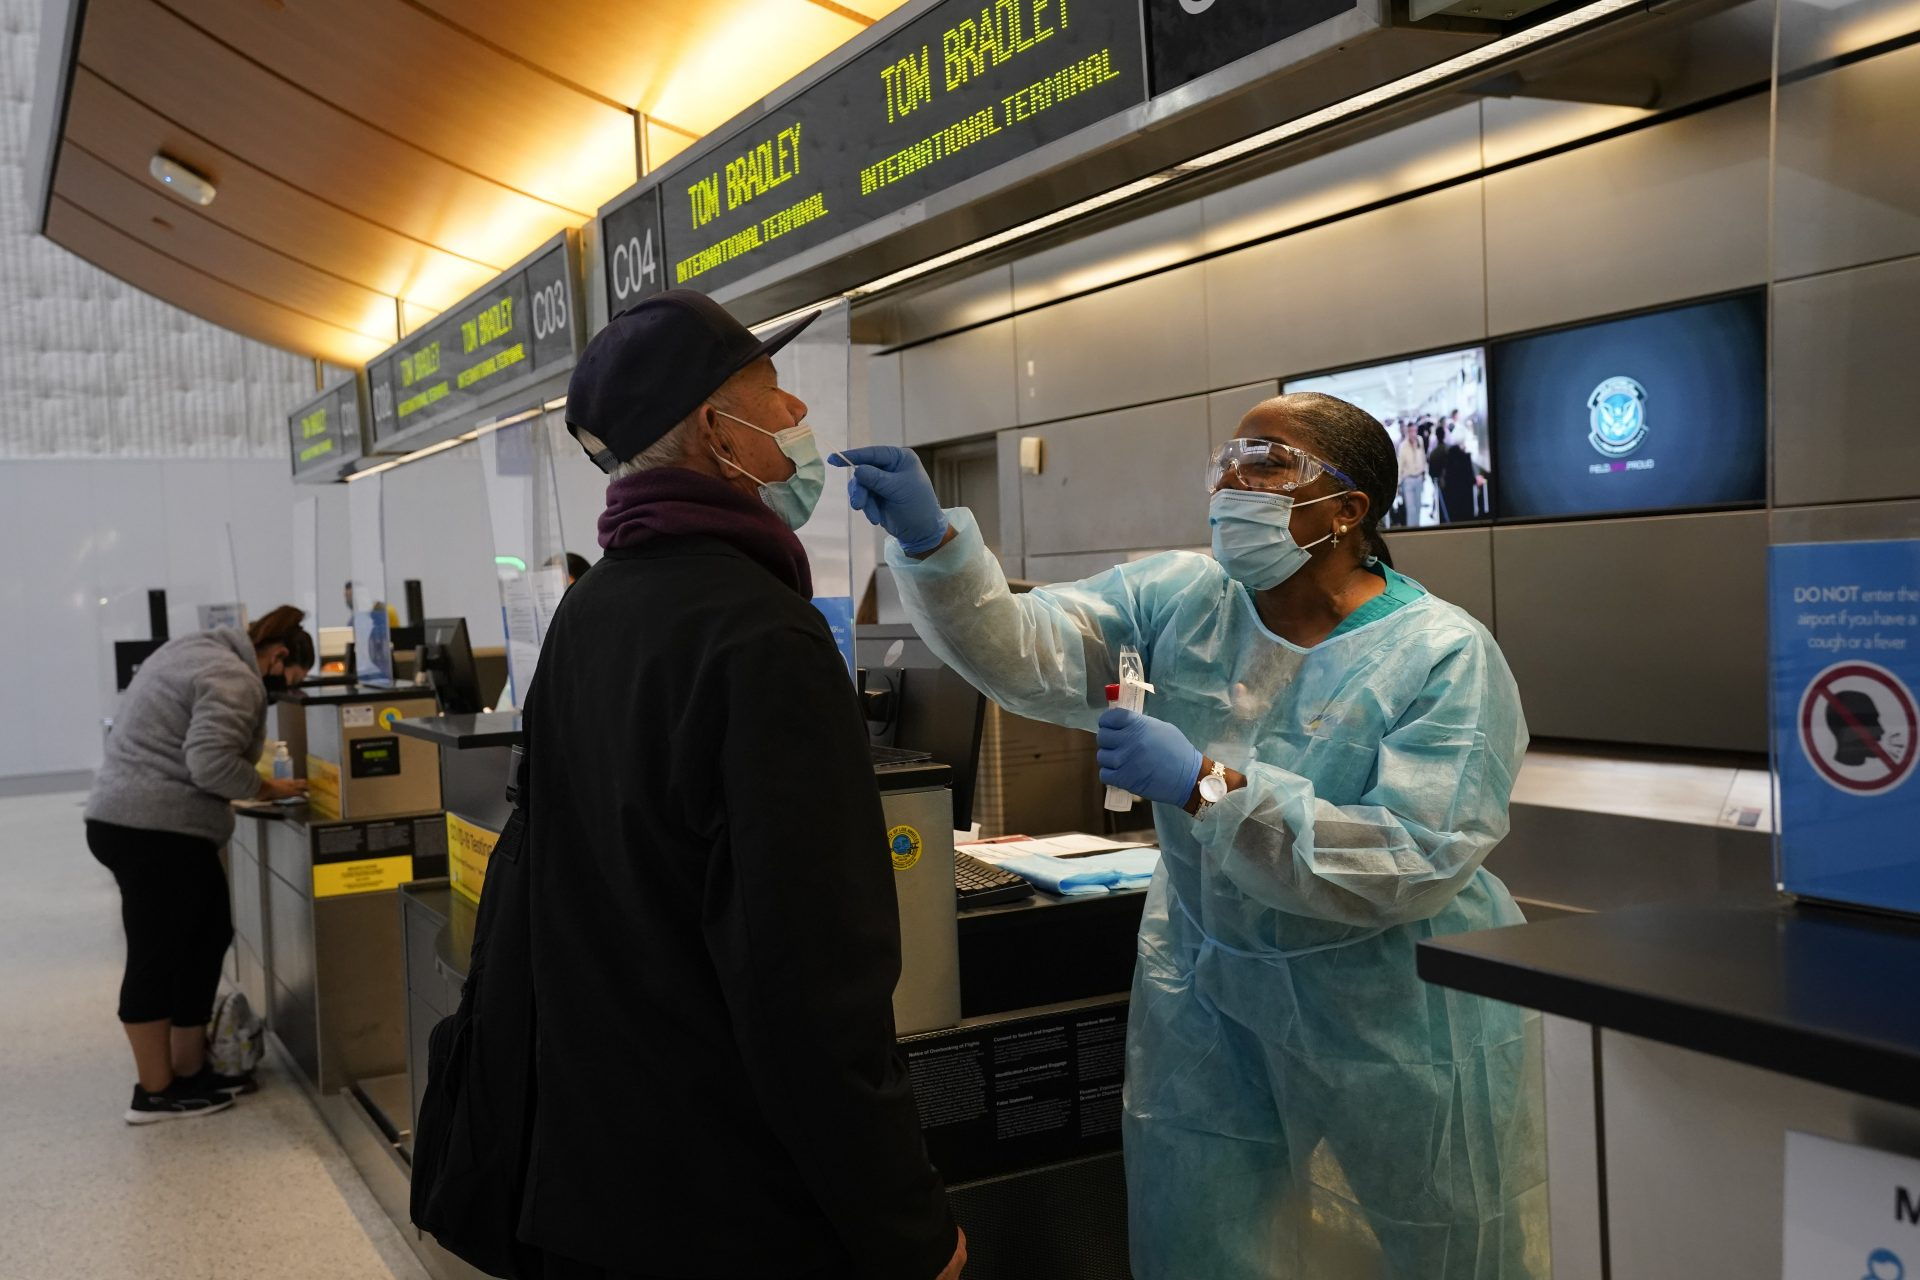 Licensed vocational nurse Caren Williams, left, collects a nasal swab sample from a traveler at a COVID-19 testing site at the Los Angeles International Airport in Los Angeles, Monday, Nov. 23, 2020. Los Angeles County announced new coronavirus-related restrictions Sunday that will prohibit in-person dining for at least three weeks as cases rise at the start of the holiday season and officials statewide begged Californians to avoid traveling or gathering in groups for Thanksgiving.